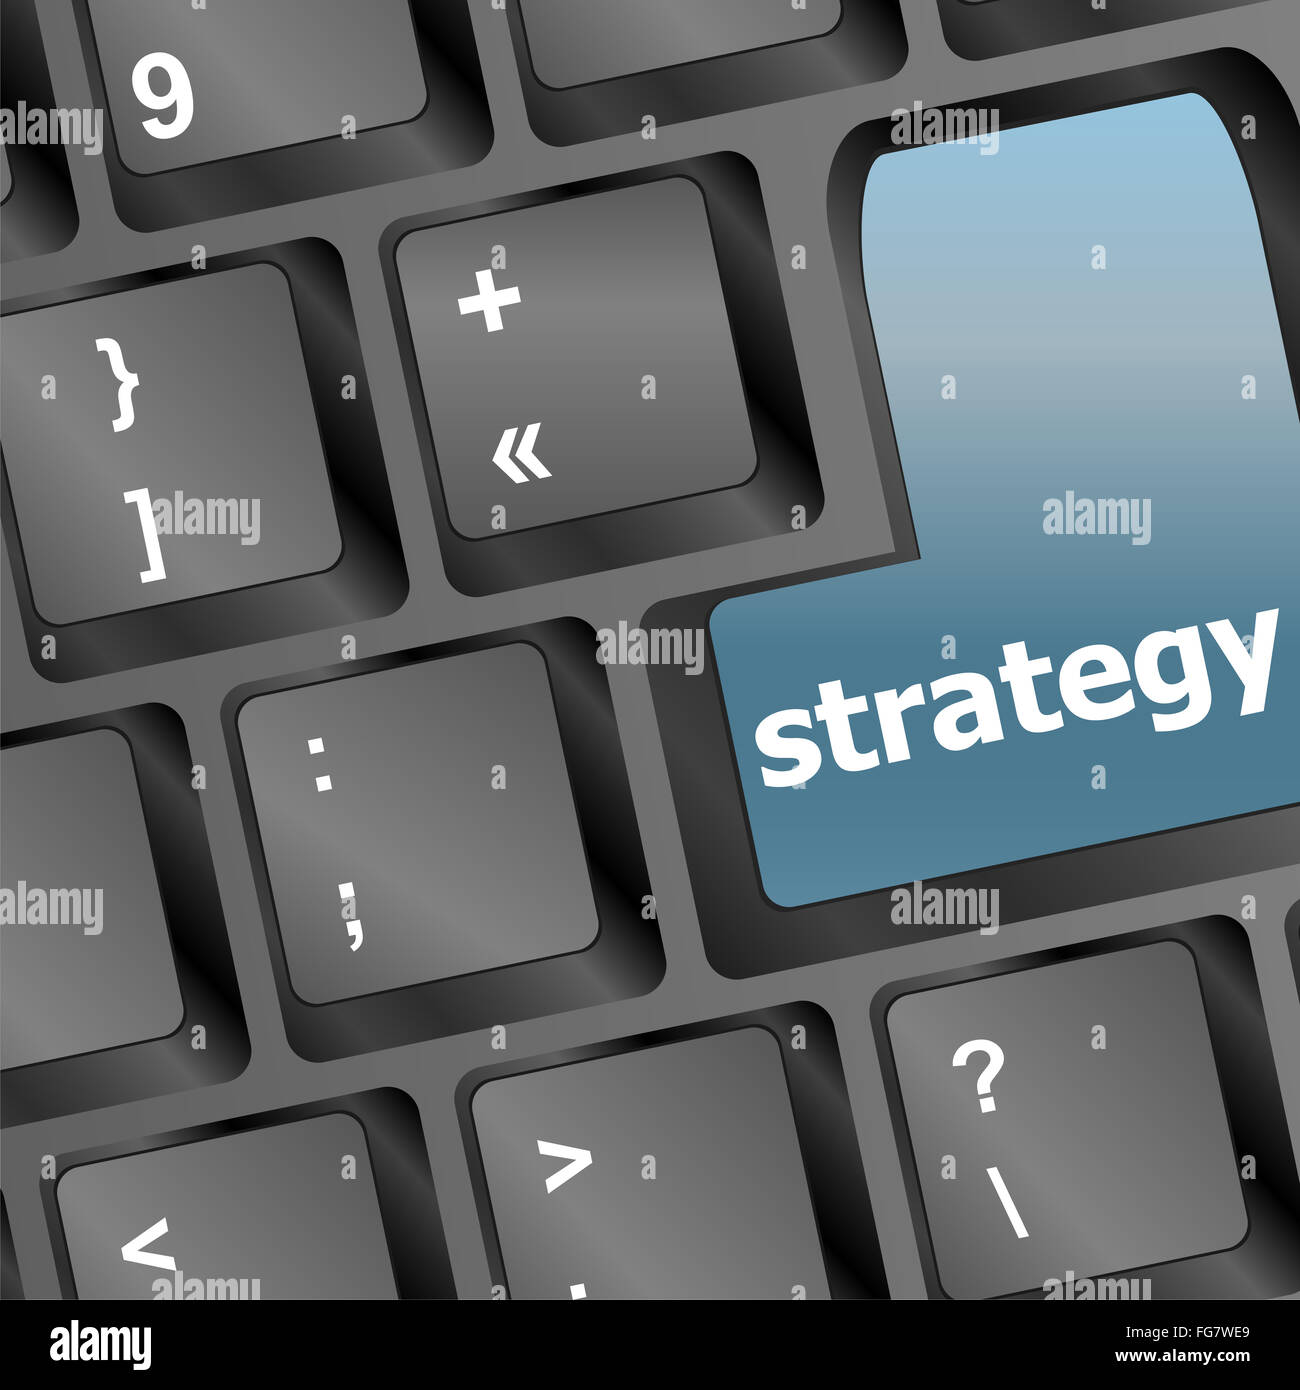 Strategy Text Symbol On Keyboard Business Concept Stock Photo